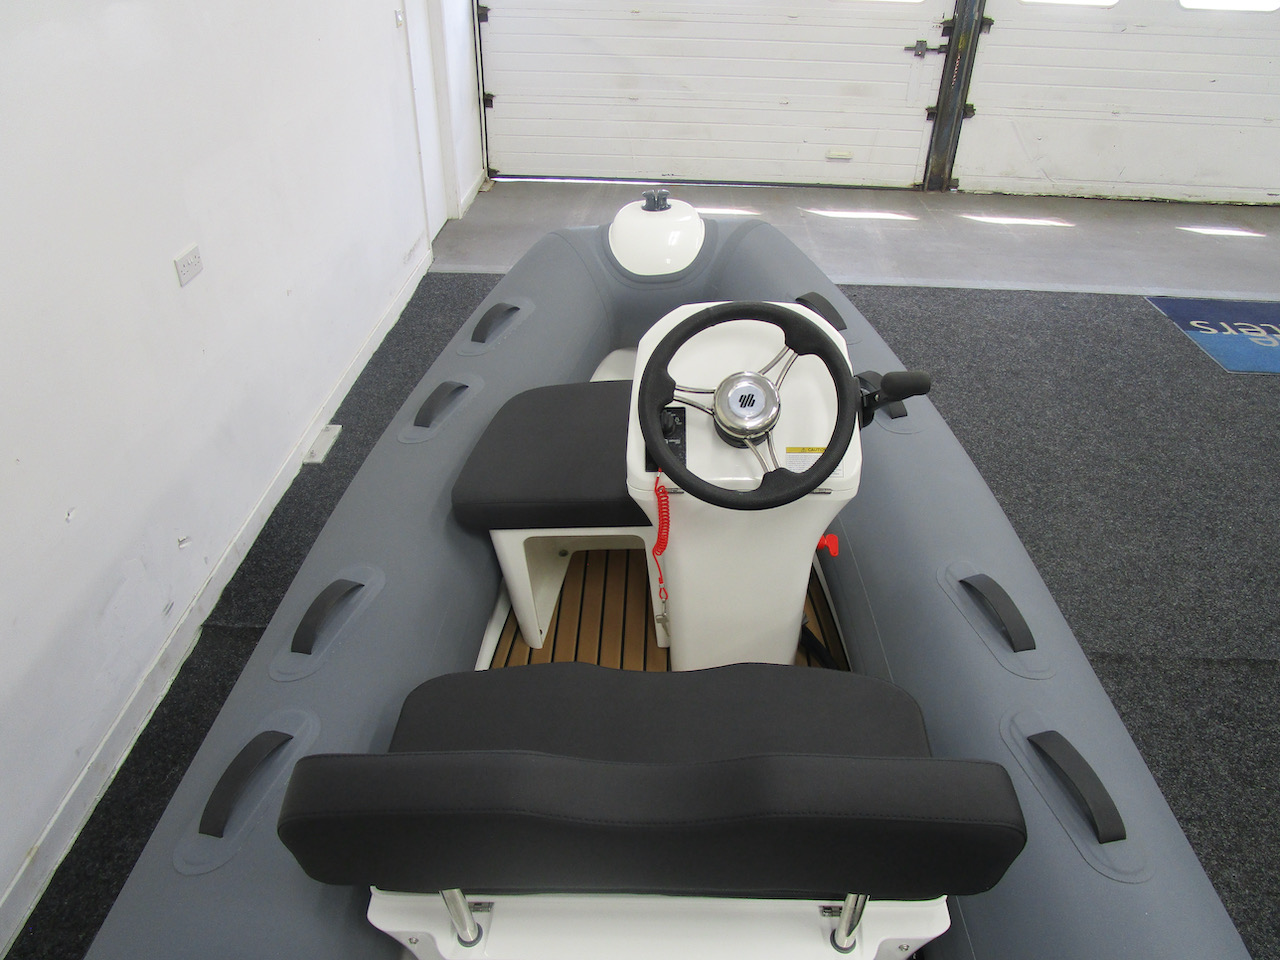 GRAND S330 RIB tender mid section